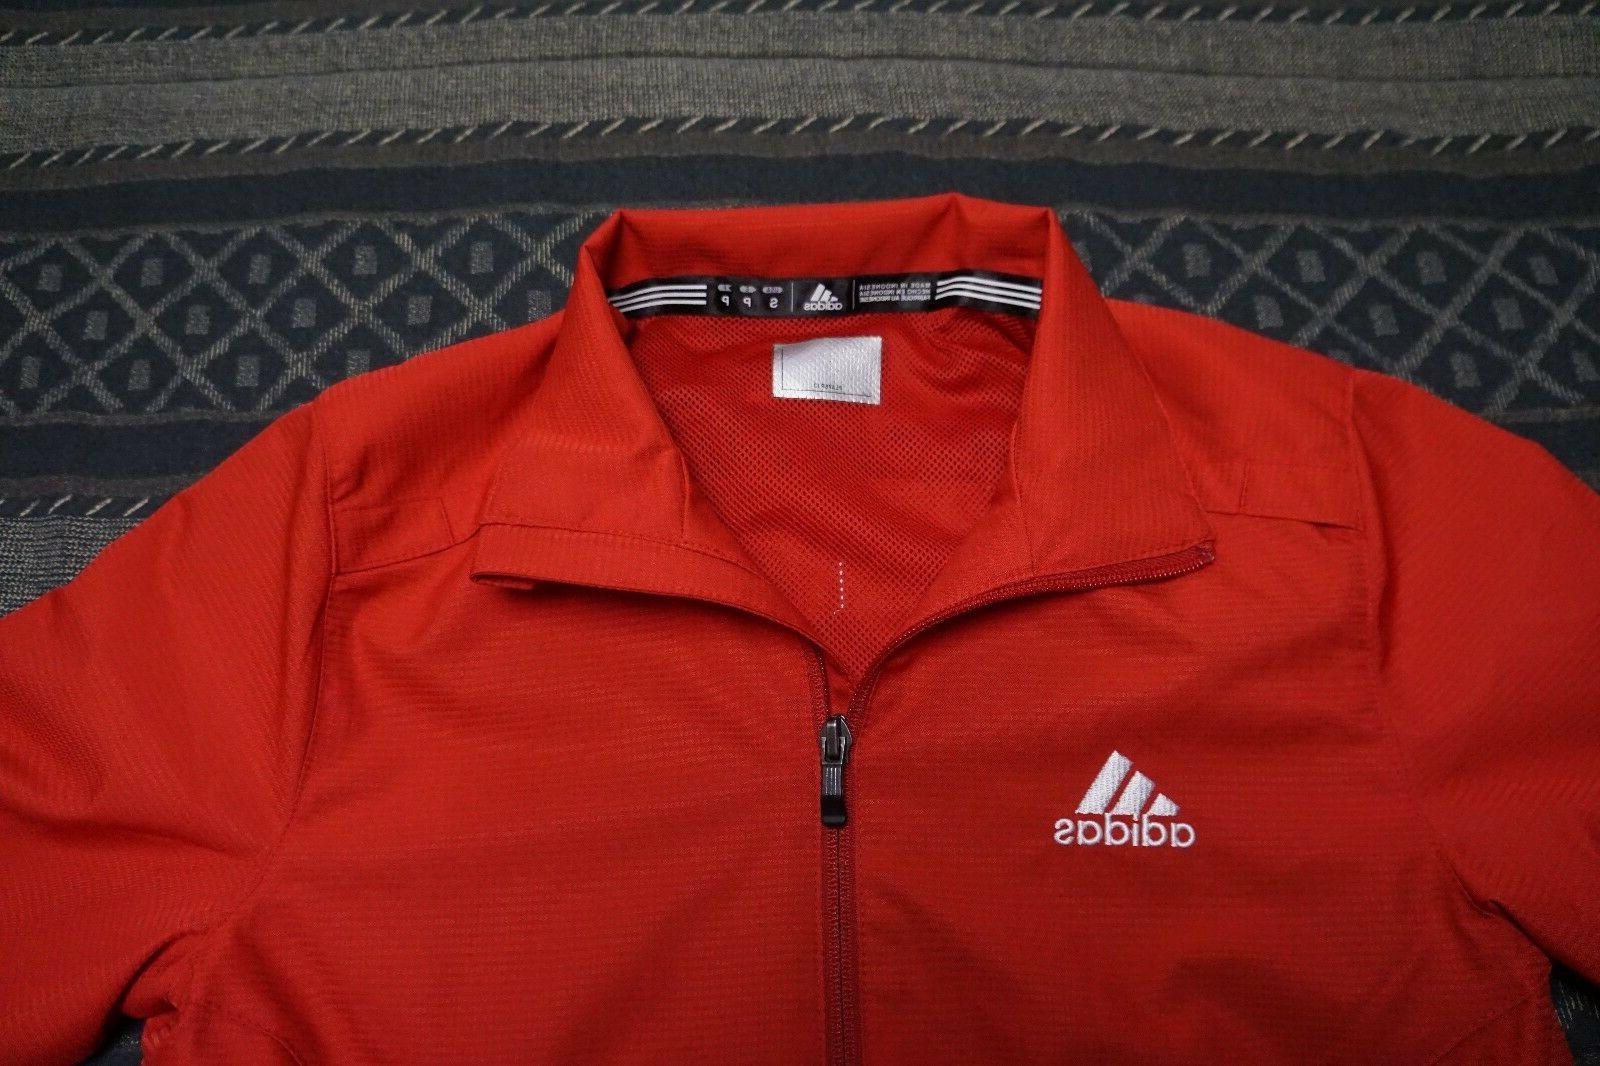 NWT Adidas Women's Woven Jacket Size Small University Red/Wh